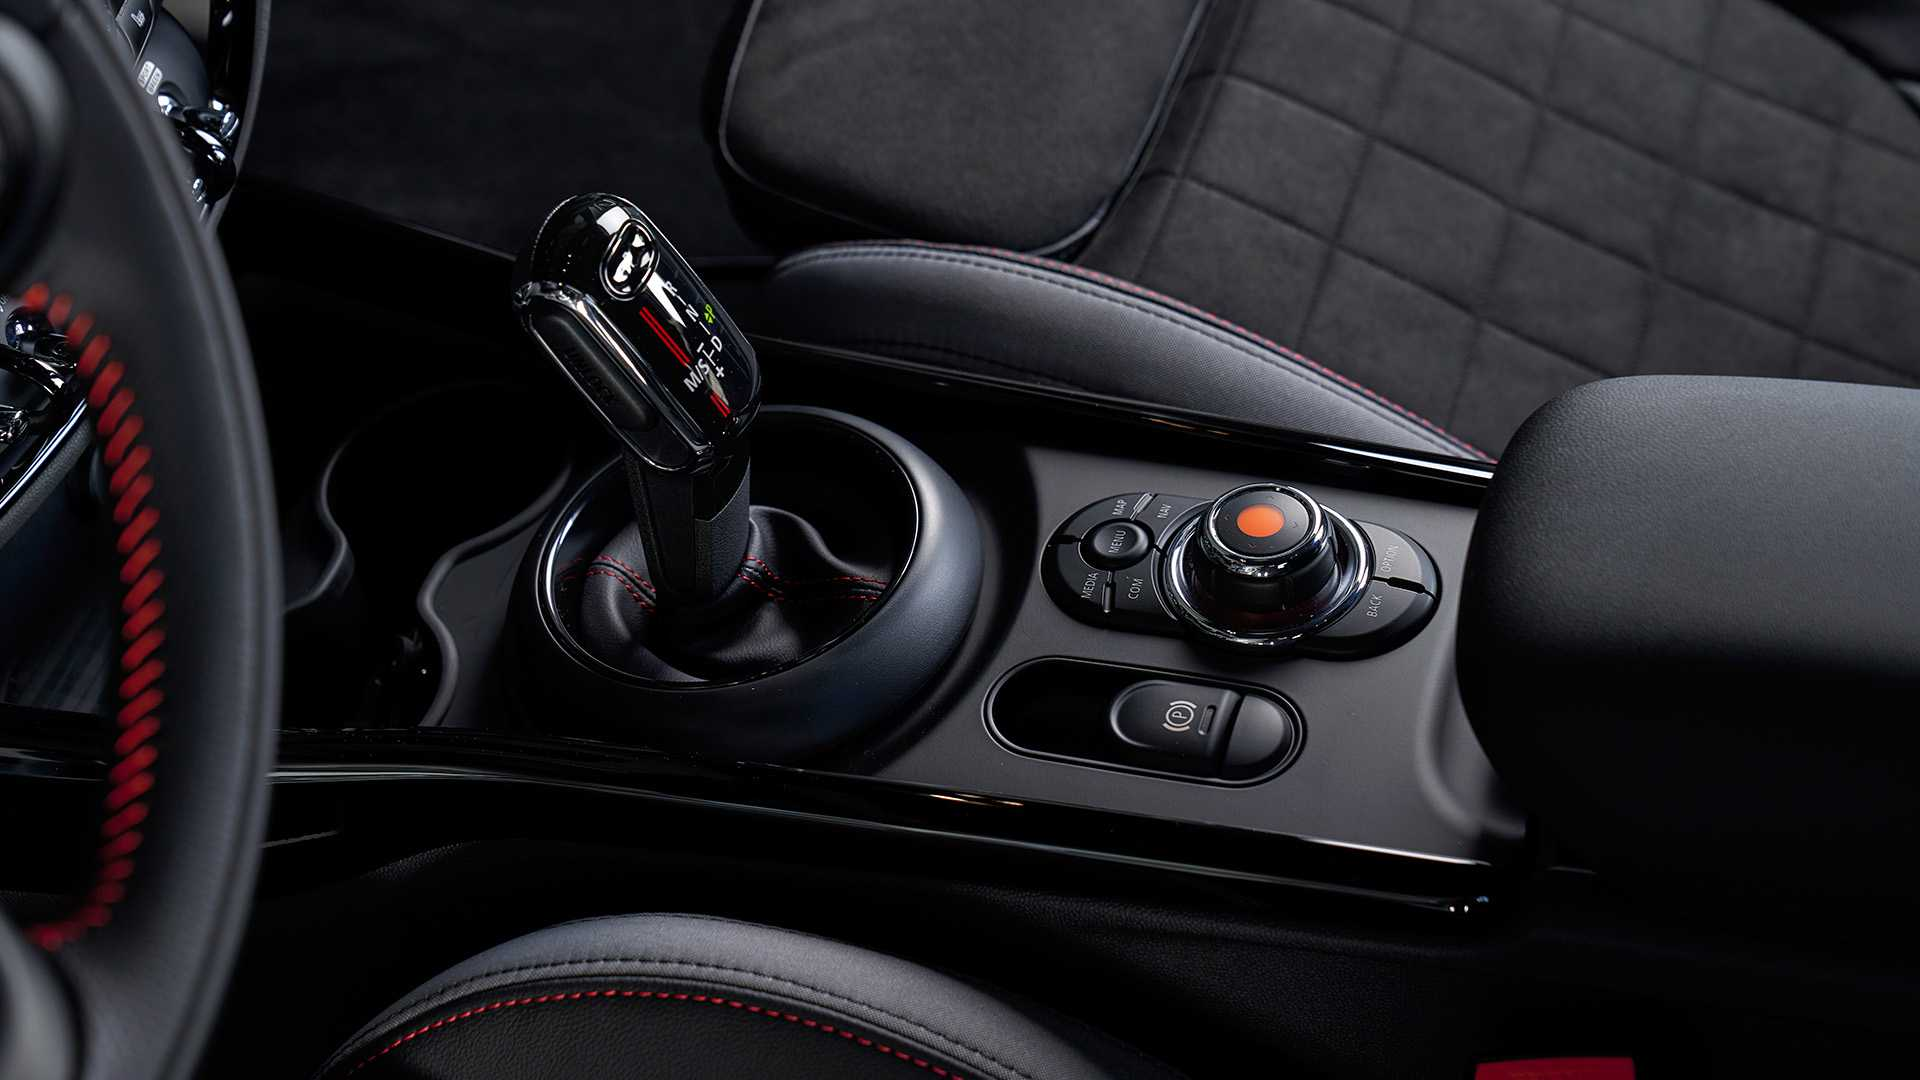 2020 MINI Clubman John Cooper Works Interior Detail Wallpapers #43 of 47